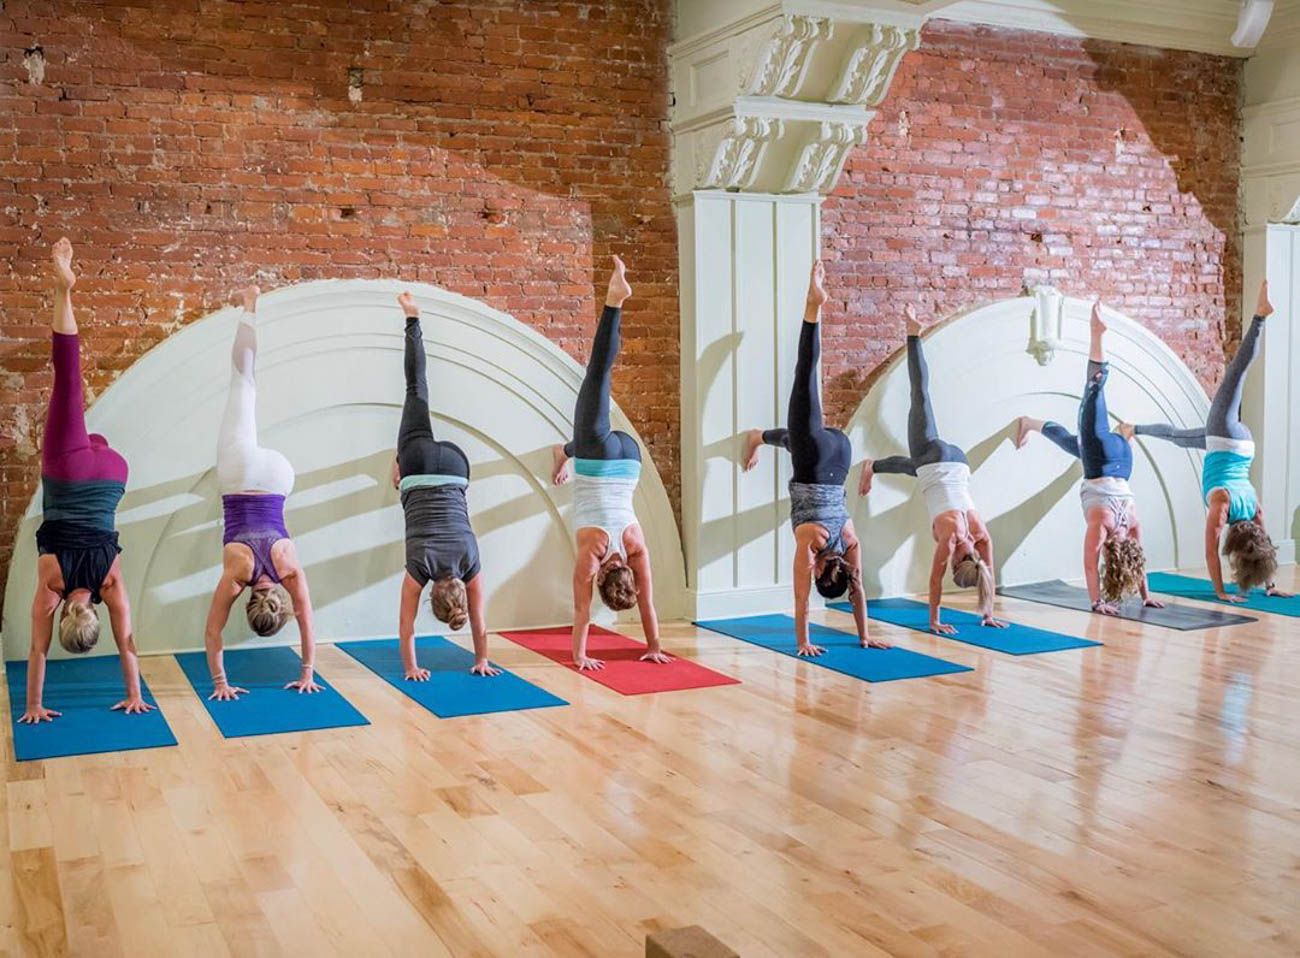 Mint Yoga Studio is located on the third floor of the historic Hiland Building in Fort Thomas. What was originally a theater back in the day, and home to a dentist's office at one point in time, the studio that now occupies the space continues to boast the site's 13-foot ceilings, exposed brick, and plenty of natural light that gives it a refreshing atmosphere. ADDRESS: 18 N Ft Thomas Avenue #301 (41075) / Image courtesy of Mint Yoga Studio // Published: 8.31.19